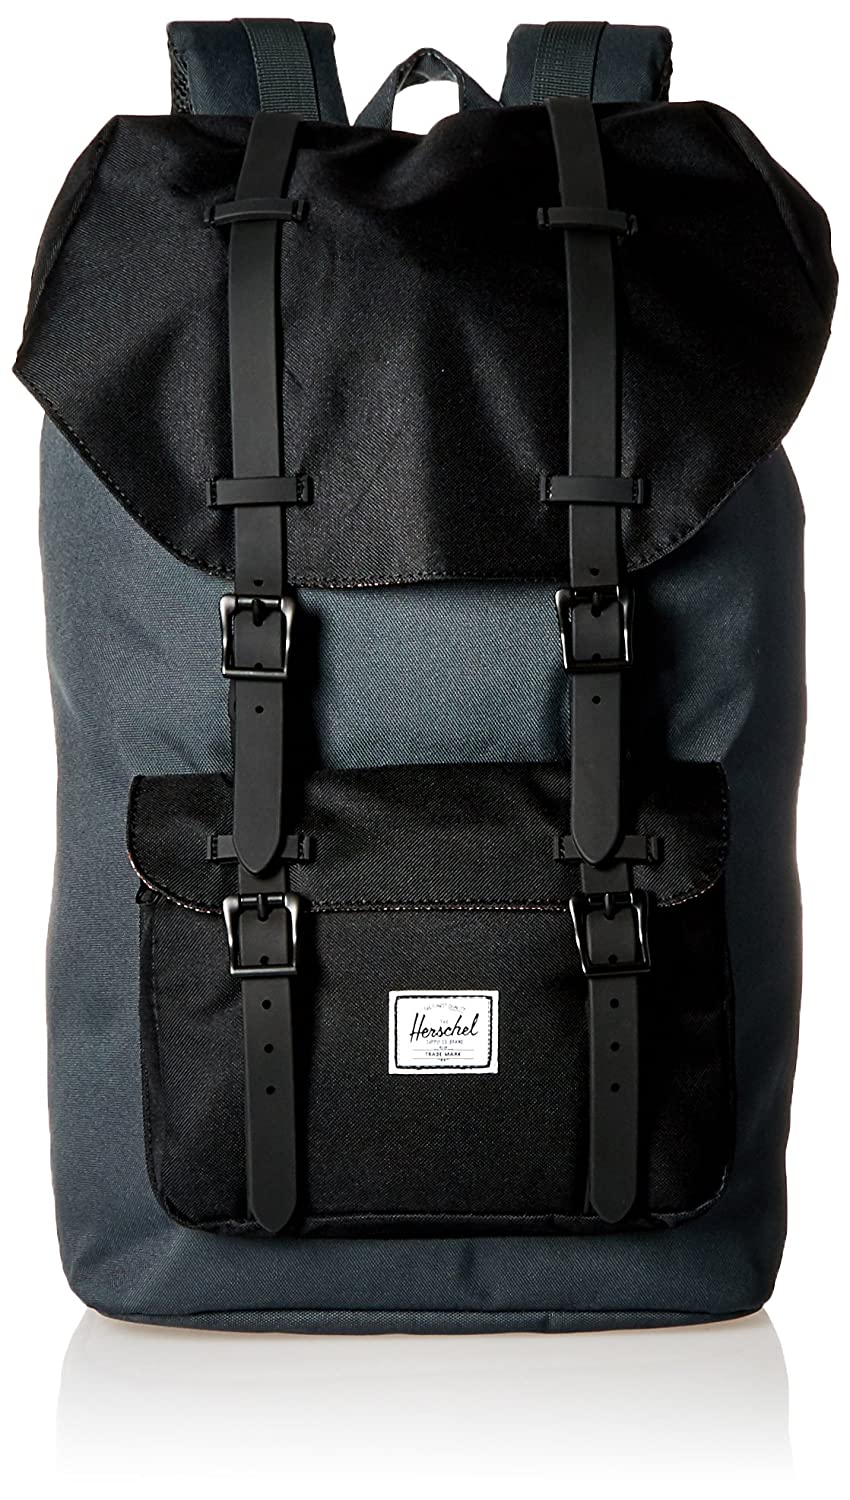 Herschel Supply Co. Little America Backpack, Navy, One Size 10014-00007-OS